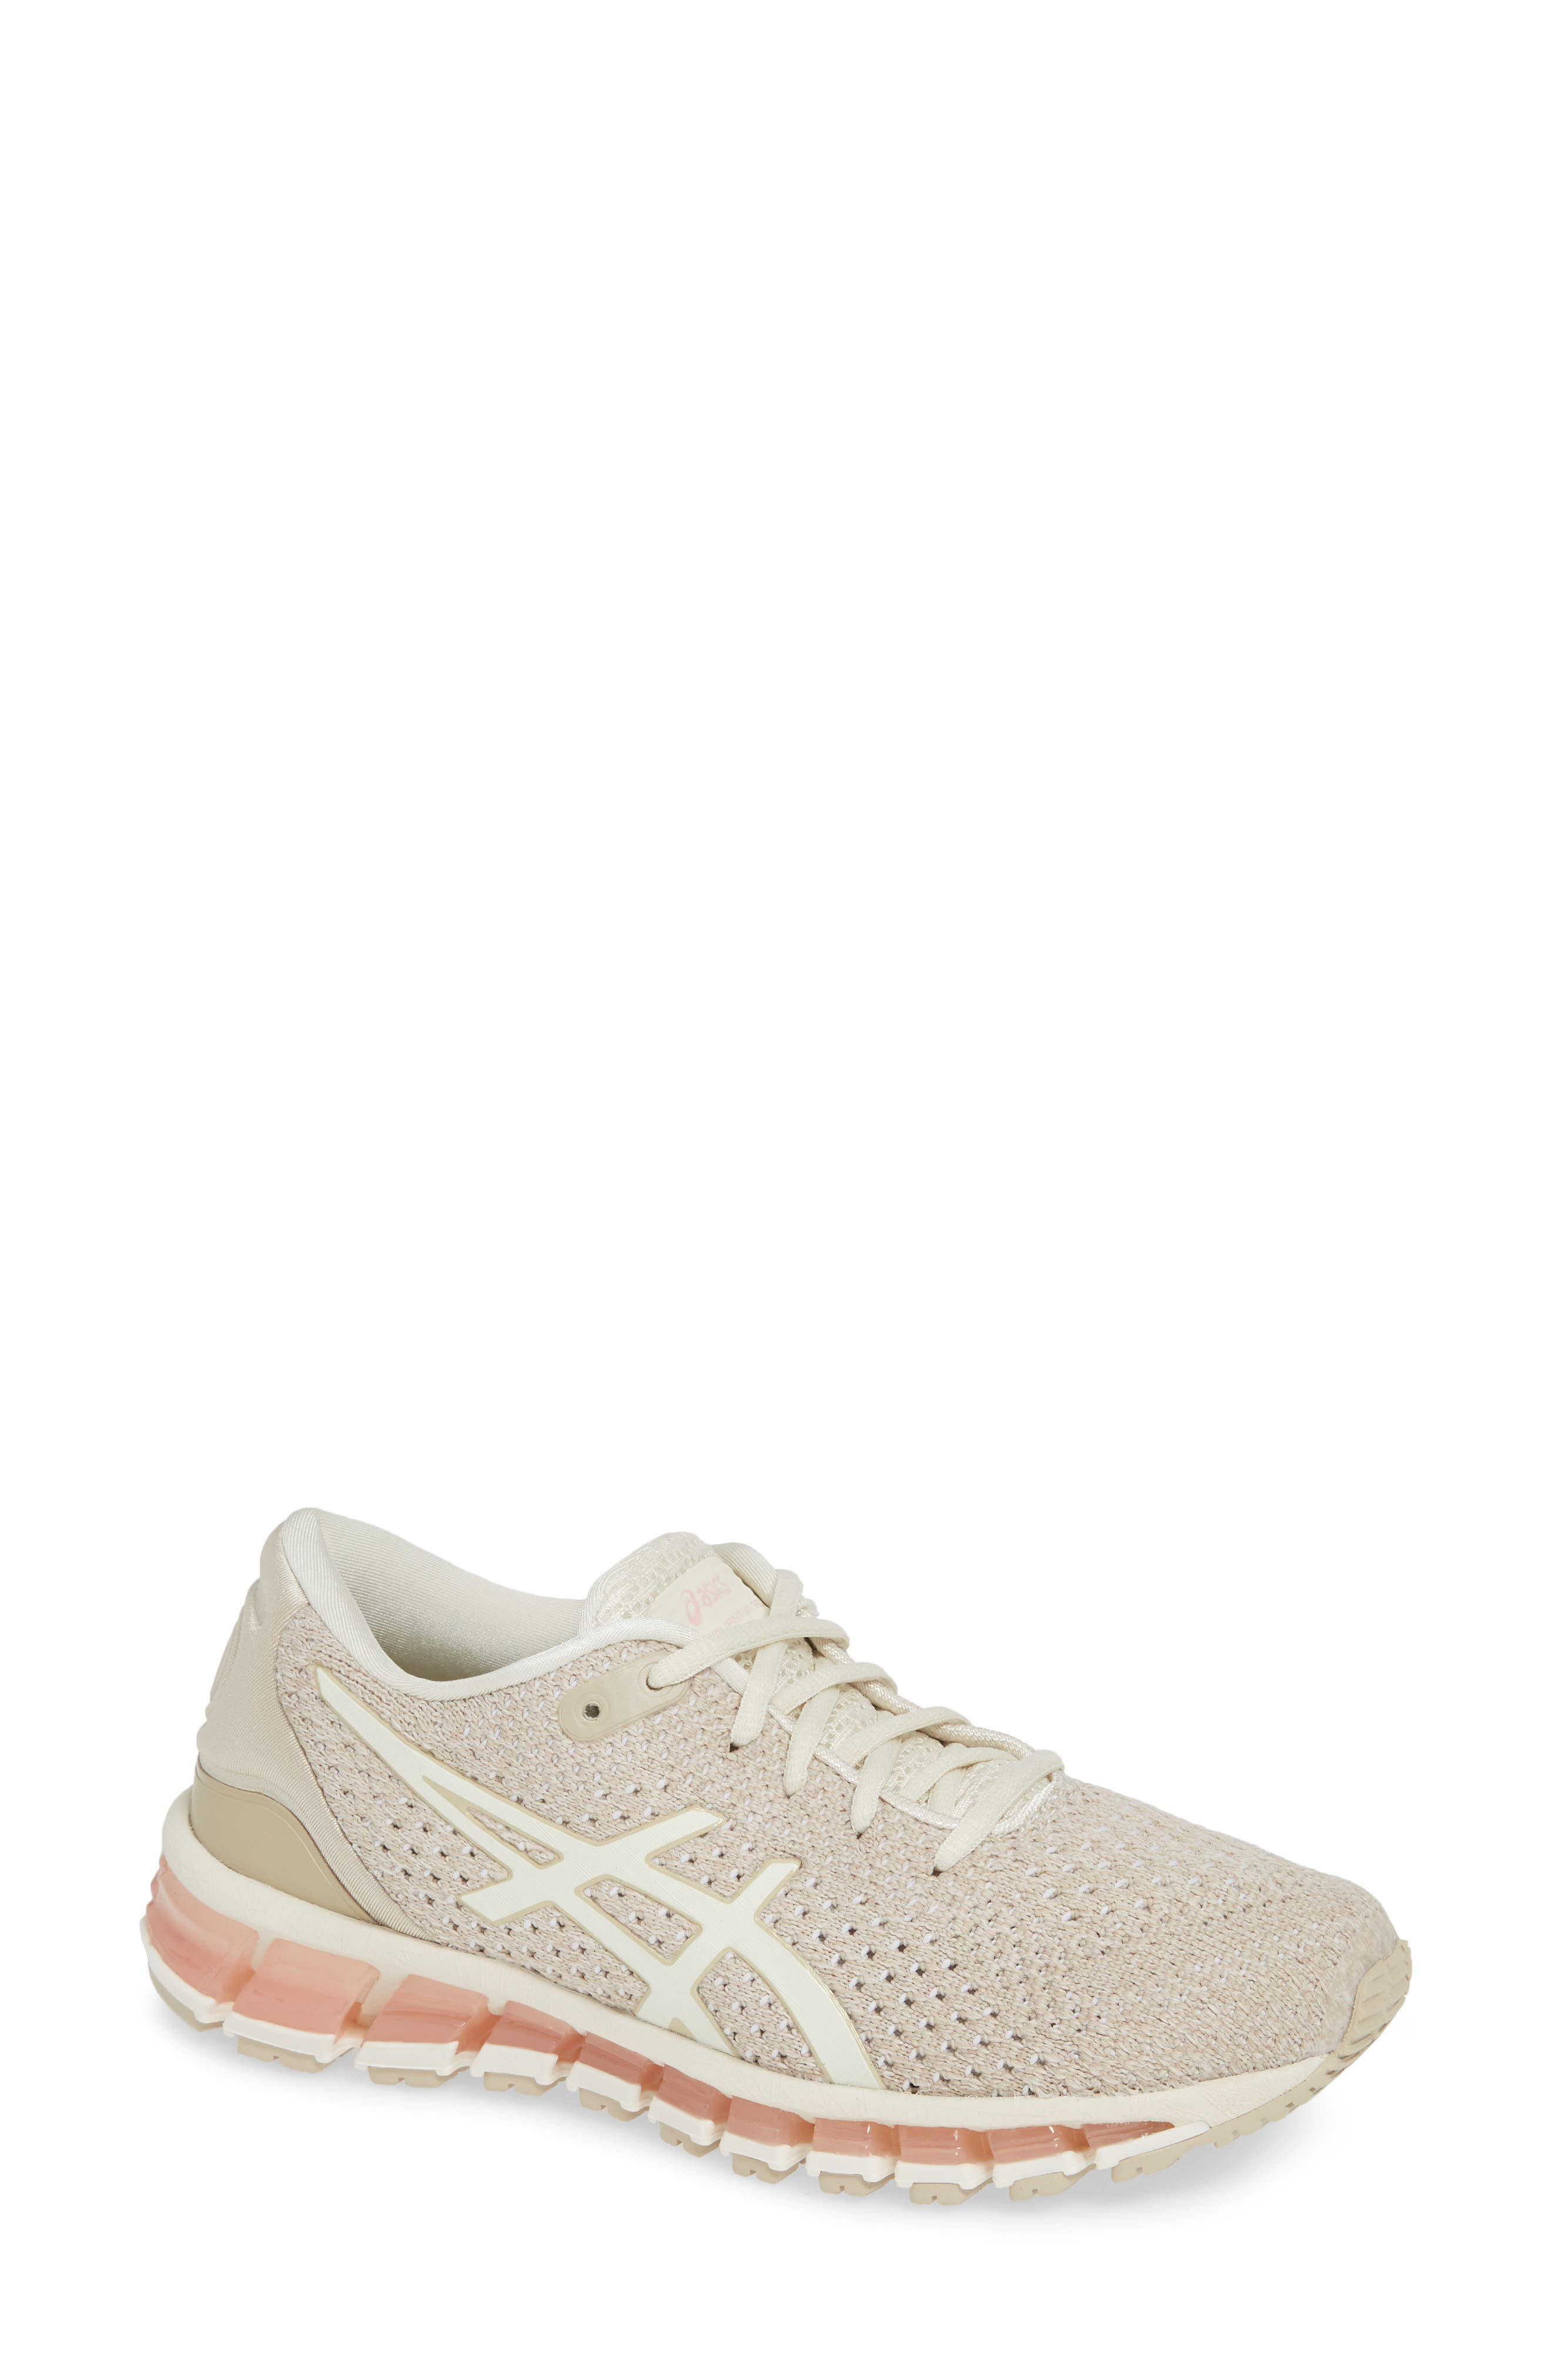 ASICS<SUP>®</SUP>,                             GEL-Quantum 360 Running Shoe,                             Main thumbnail 1, color,                             BIRCH/ FEATHER GREY